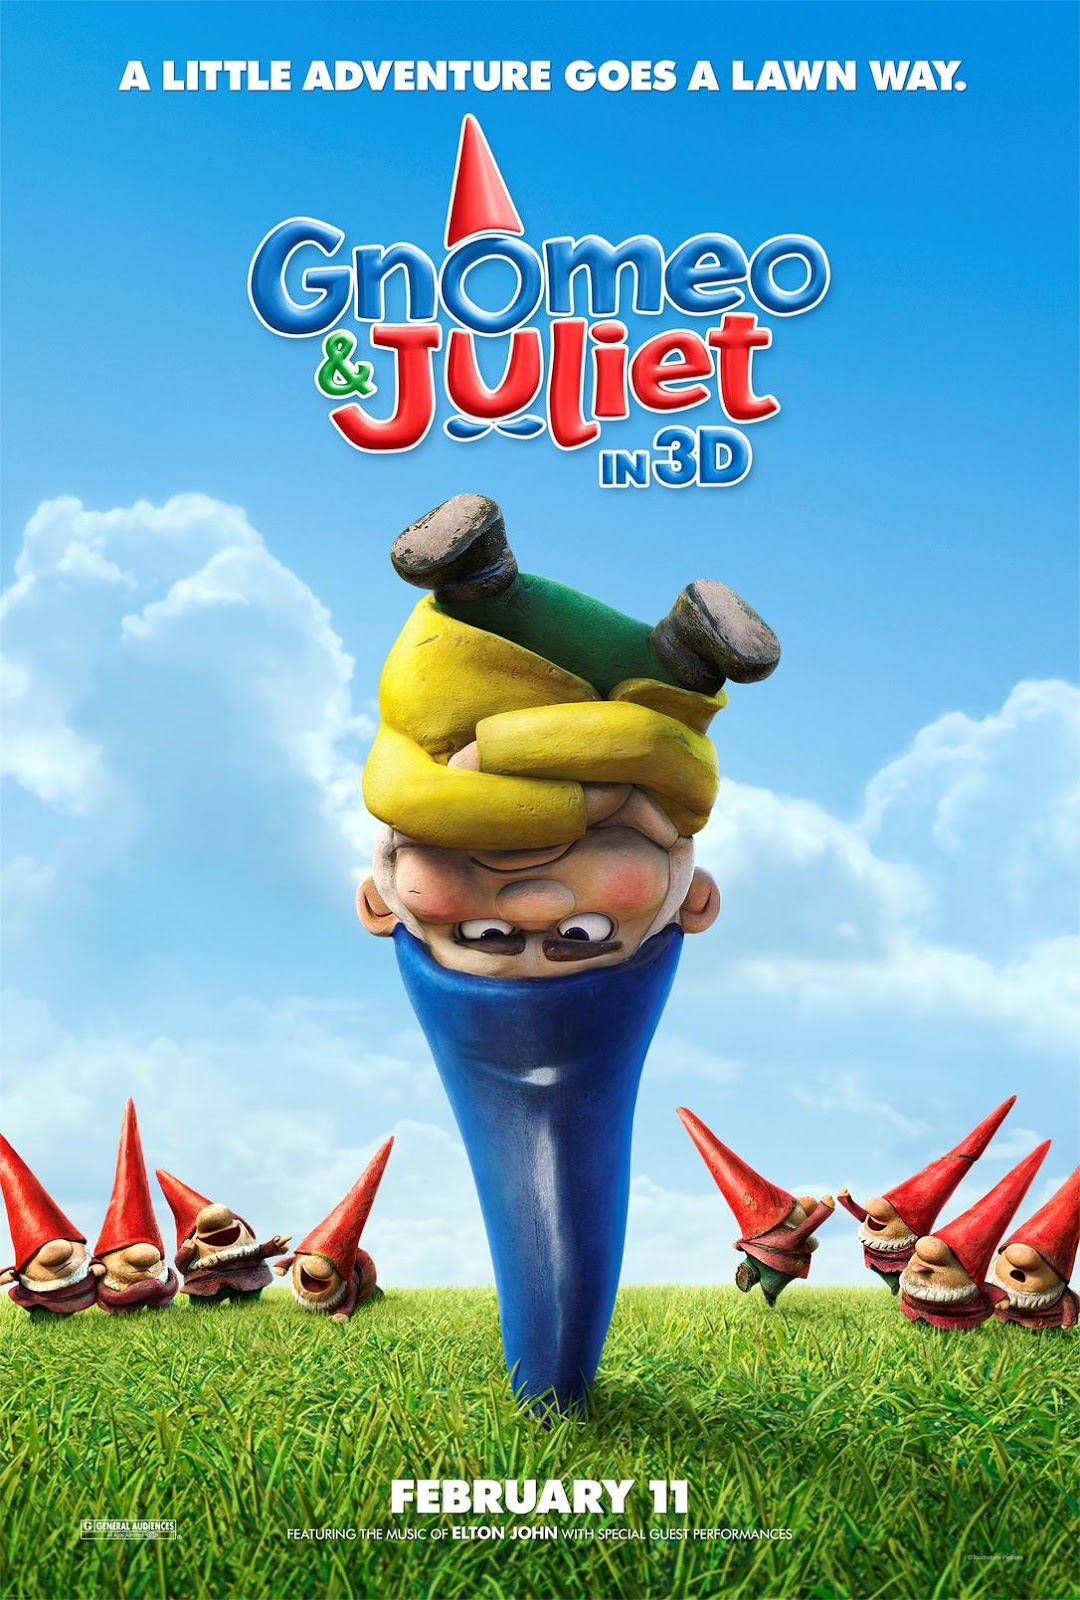 http://2.bp.blogspot.com/_-QZN5SPWJjA/TU3VvxNnfmI/AAAAAAAAAOA/OIfLPjk7efg/s1600/gnomeo_and_juliet_movie_poster_2.jpg